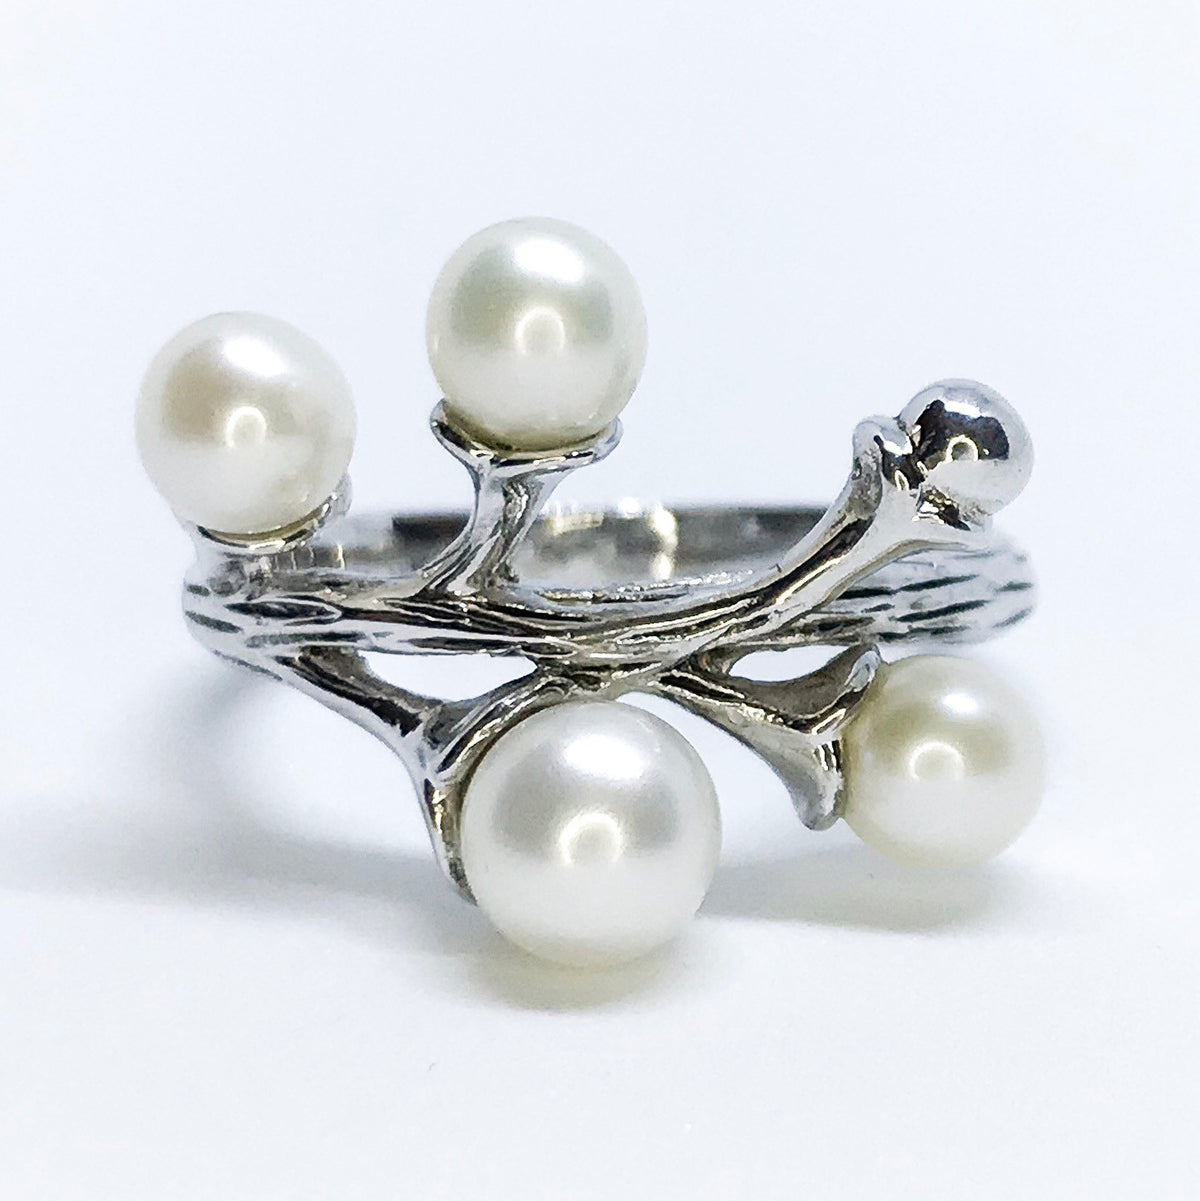 NEW 14K White Gold Layered on Sterling Silver Branch Design with Pearls